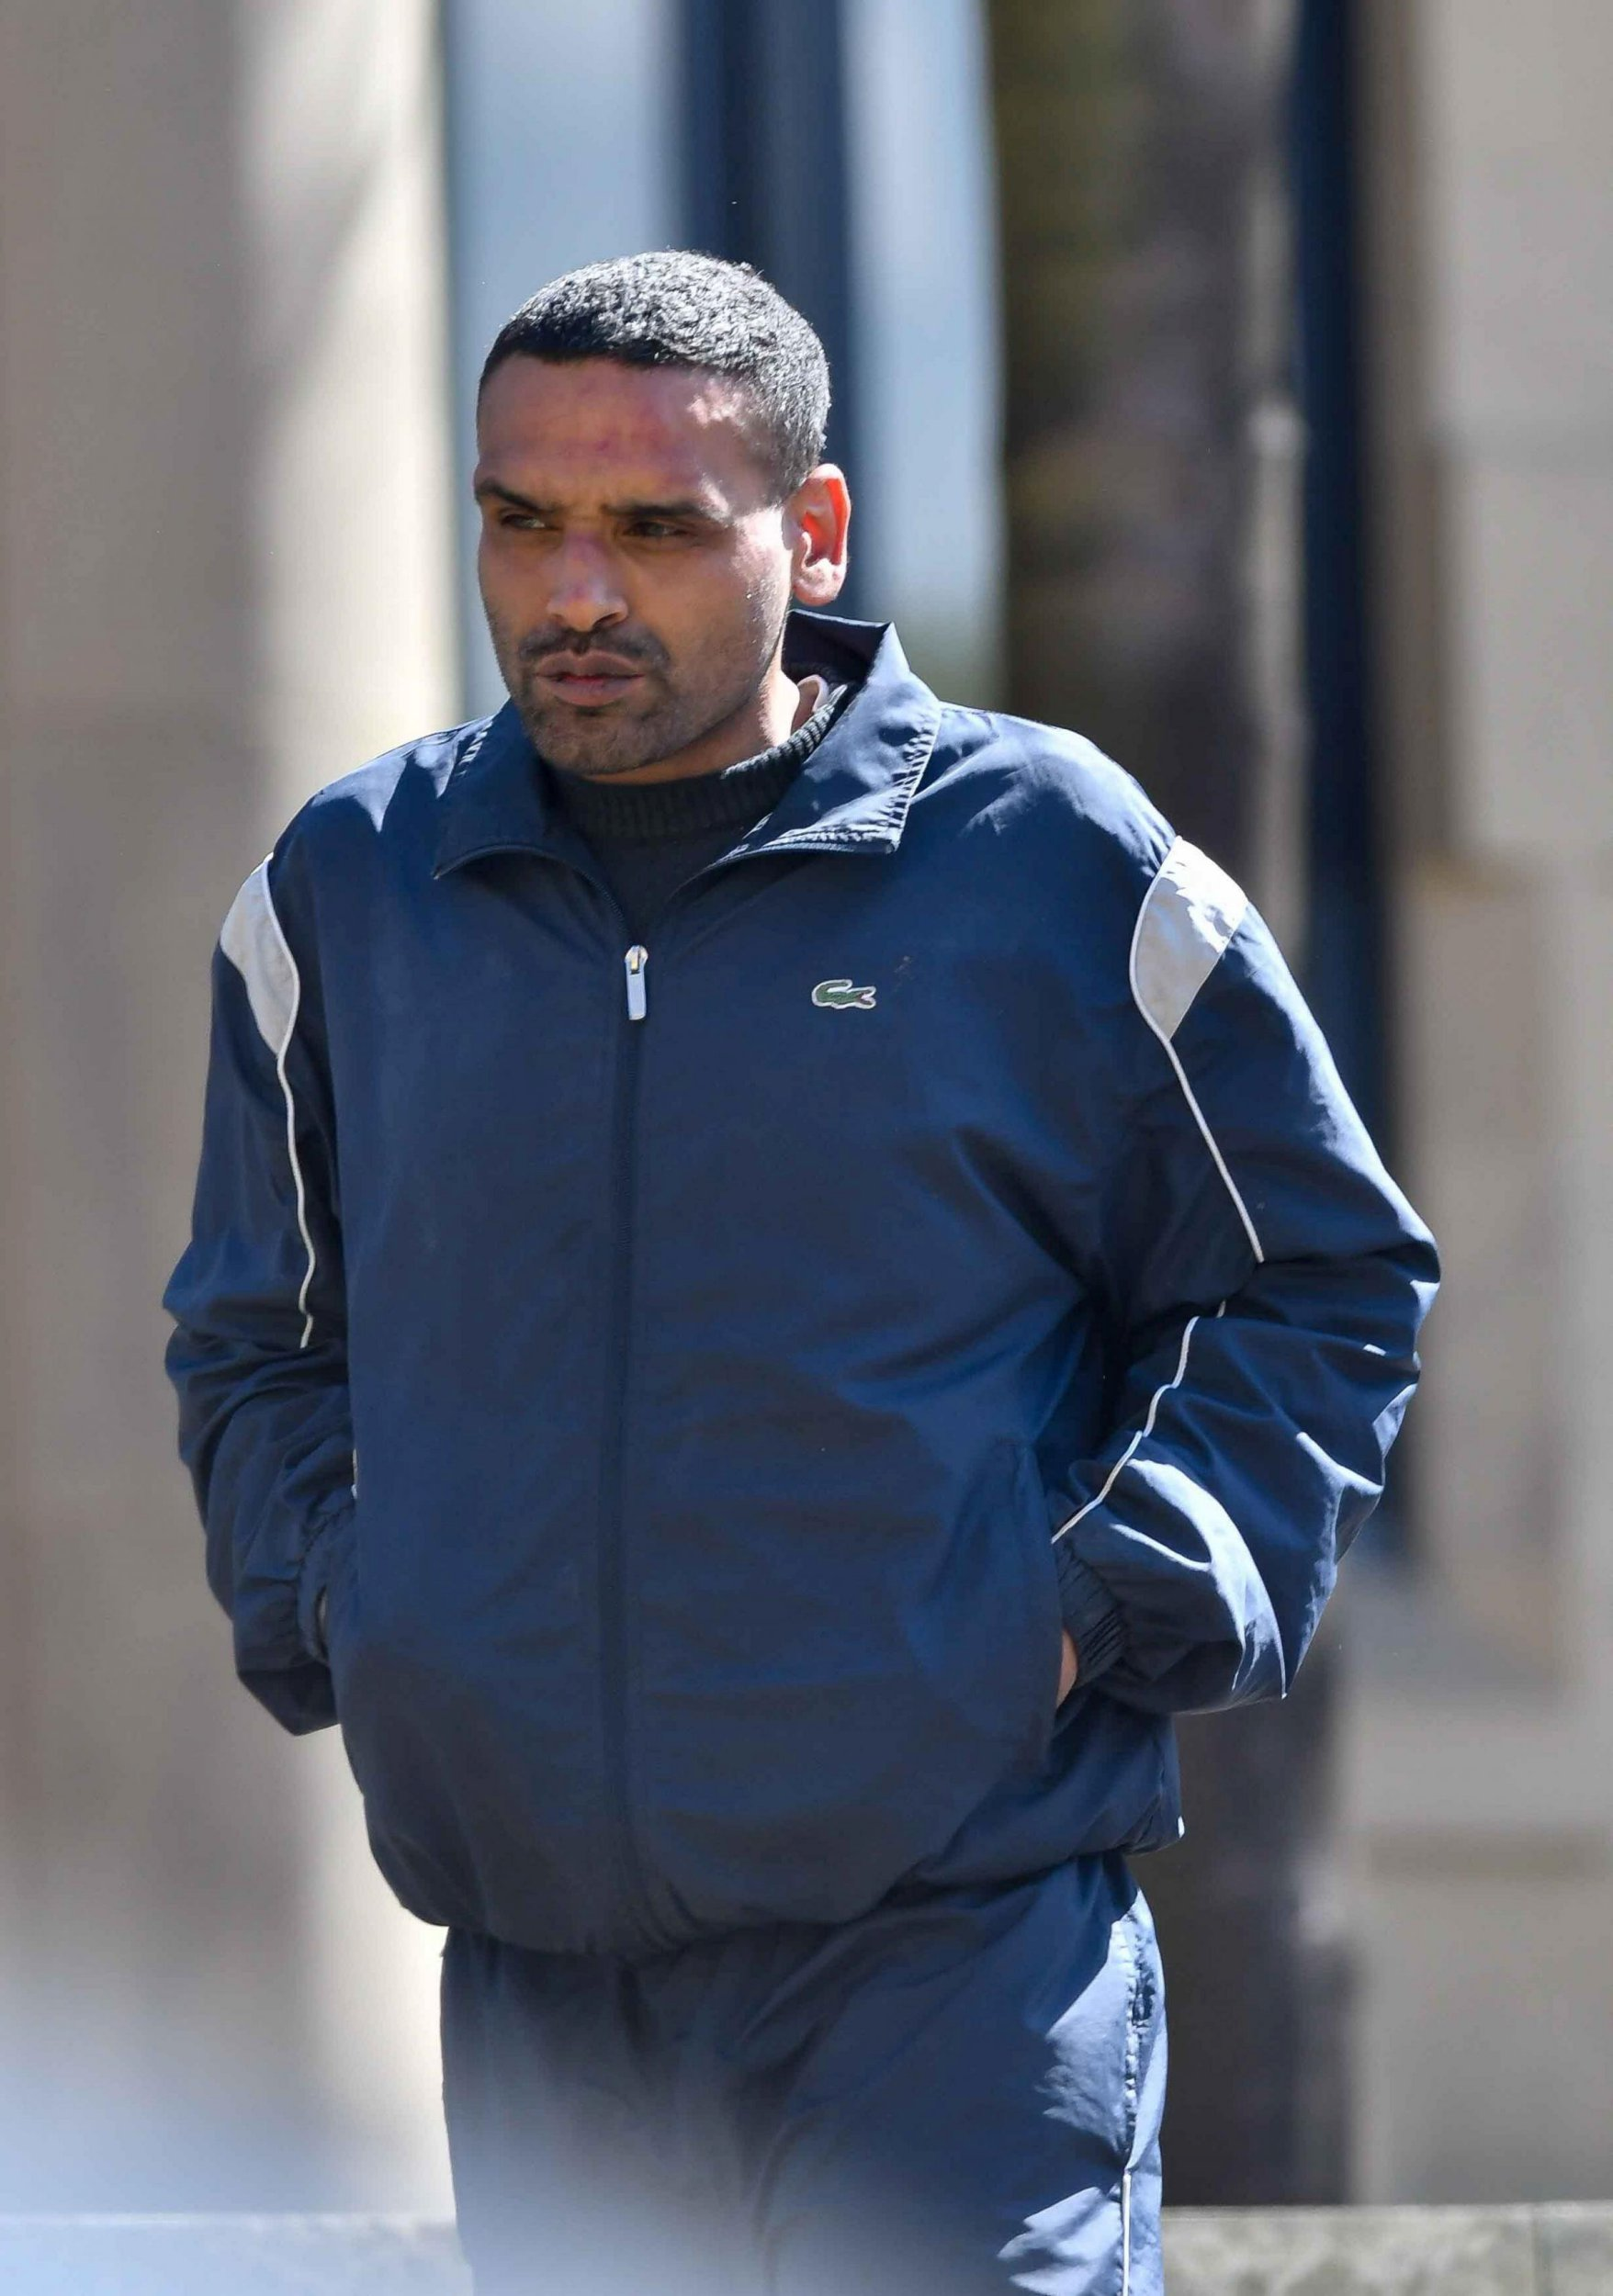 Defendant Shaid Hanif leaves Bradford Crown court. See SWNS story SWLErape; Shaid Hanif from Bradford found guilty of raping a young woman he picked up outside a club - who already had a broken jaw. During the trial, the court heard that Hanif came across the woman by chance outside Jurys Inn, Bradford. Her shirt was covered in blood, she had no handbag and she had suffered a broken jaw, chipped teeth, a fractured finger and bruising and grazing.